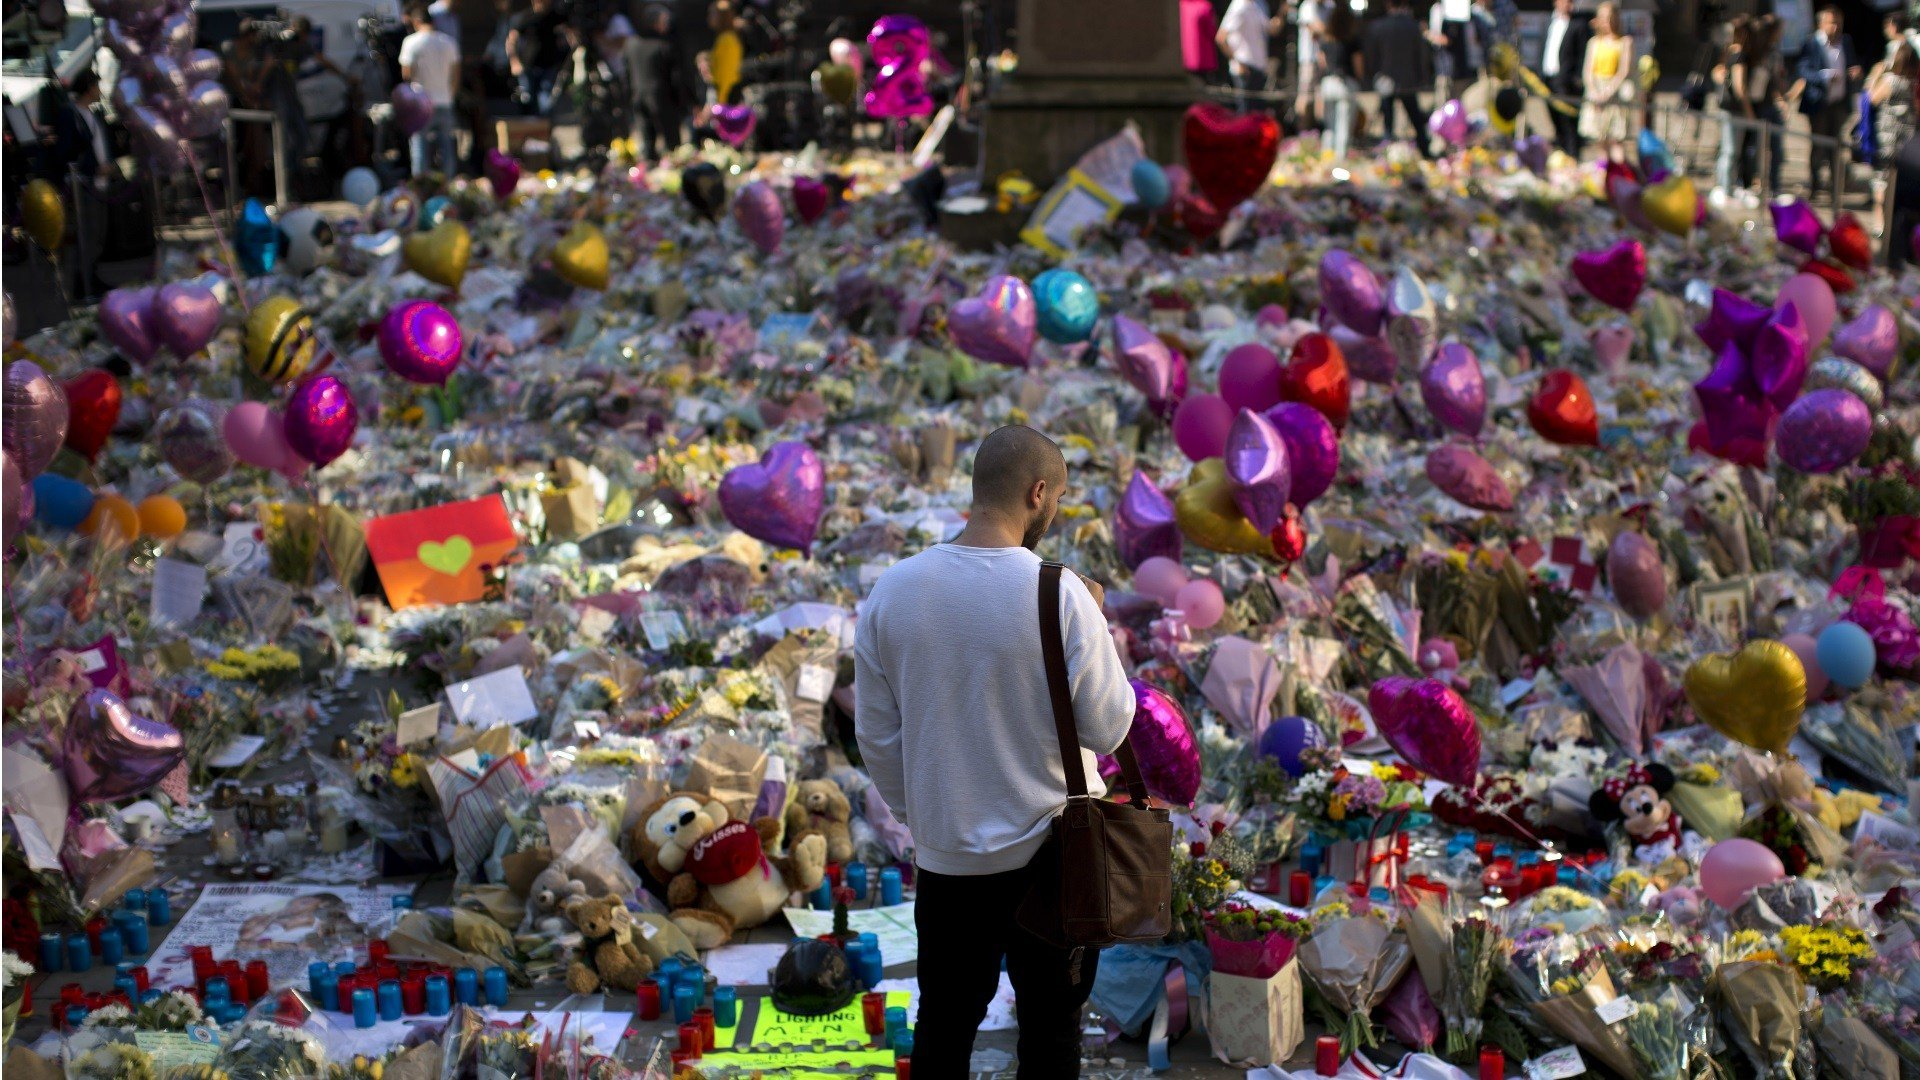 A man stands next to flowers for the victims of Monday's bombing at St Ann's Square in central Manchester, England, Friday, May 26 2017. British police investigating the Manchester Arena bombing arrested a ninth man while continuing to search addresses as